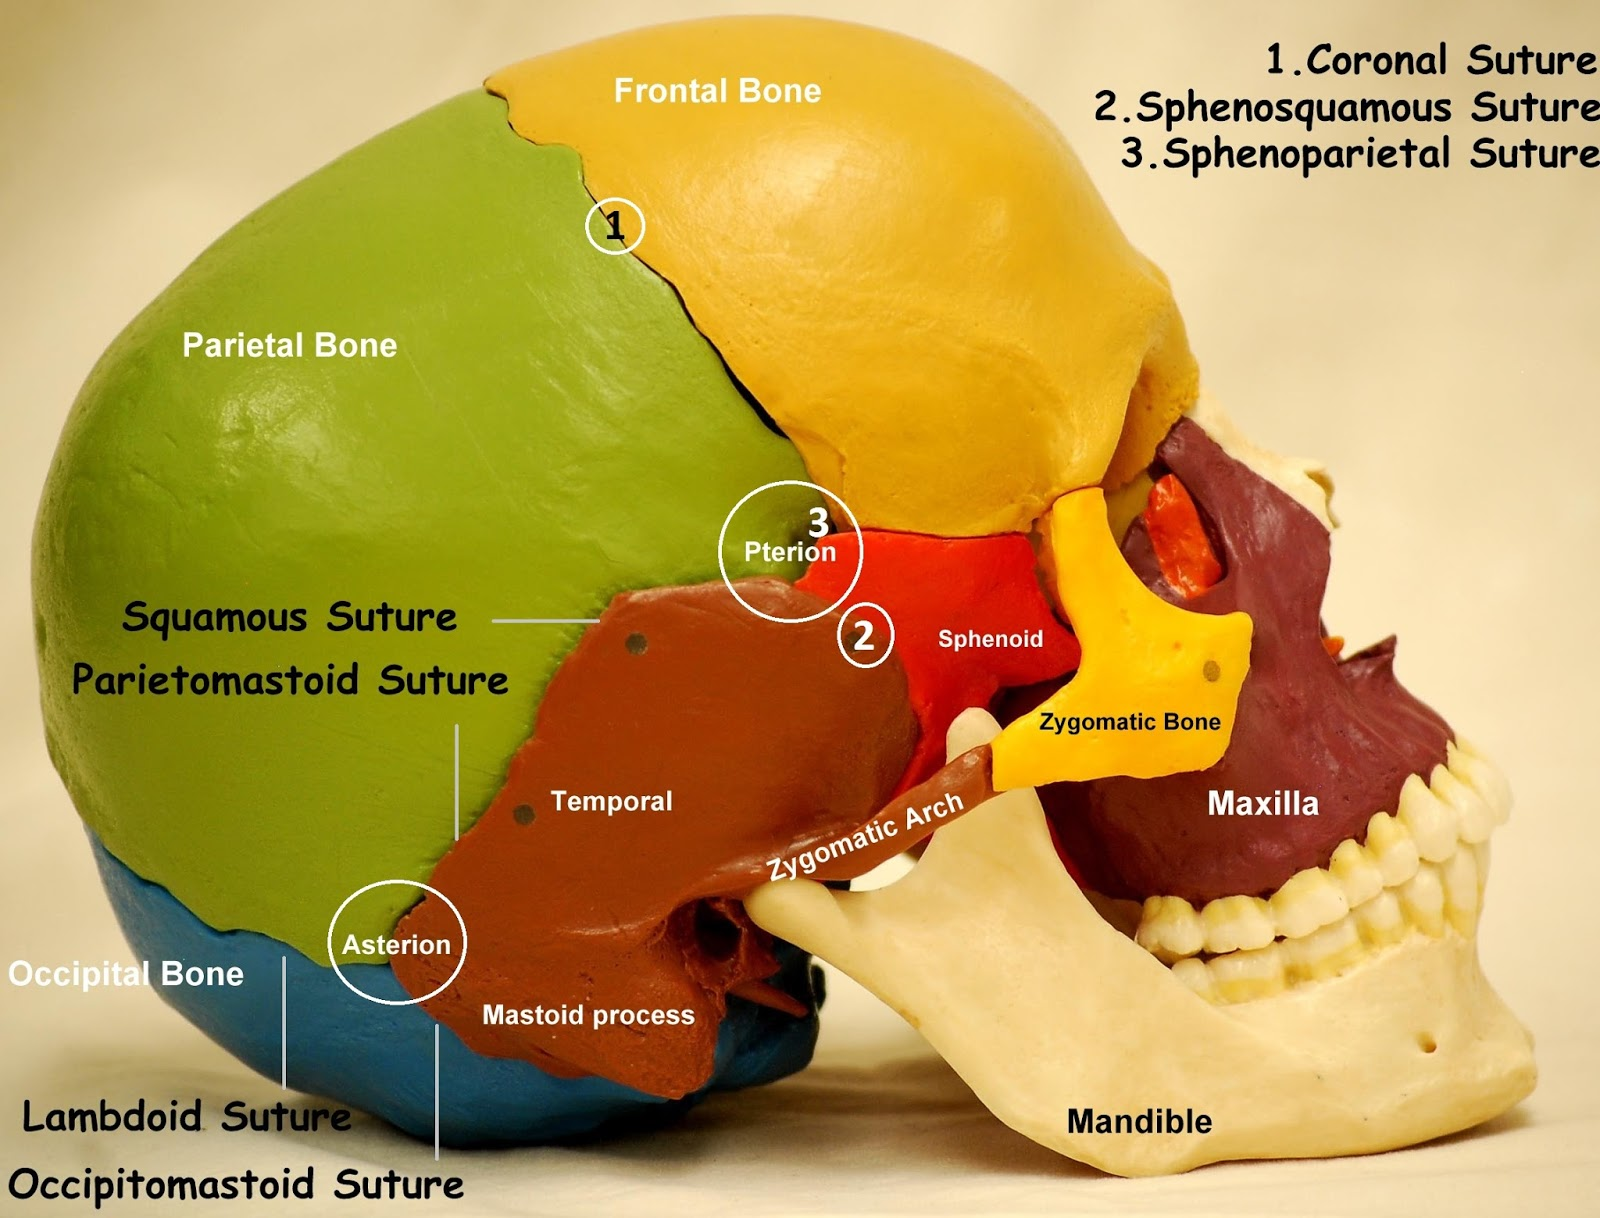 Anatomy Made Easy Lateral View Of Skull